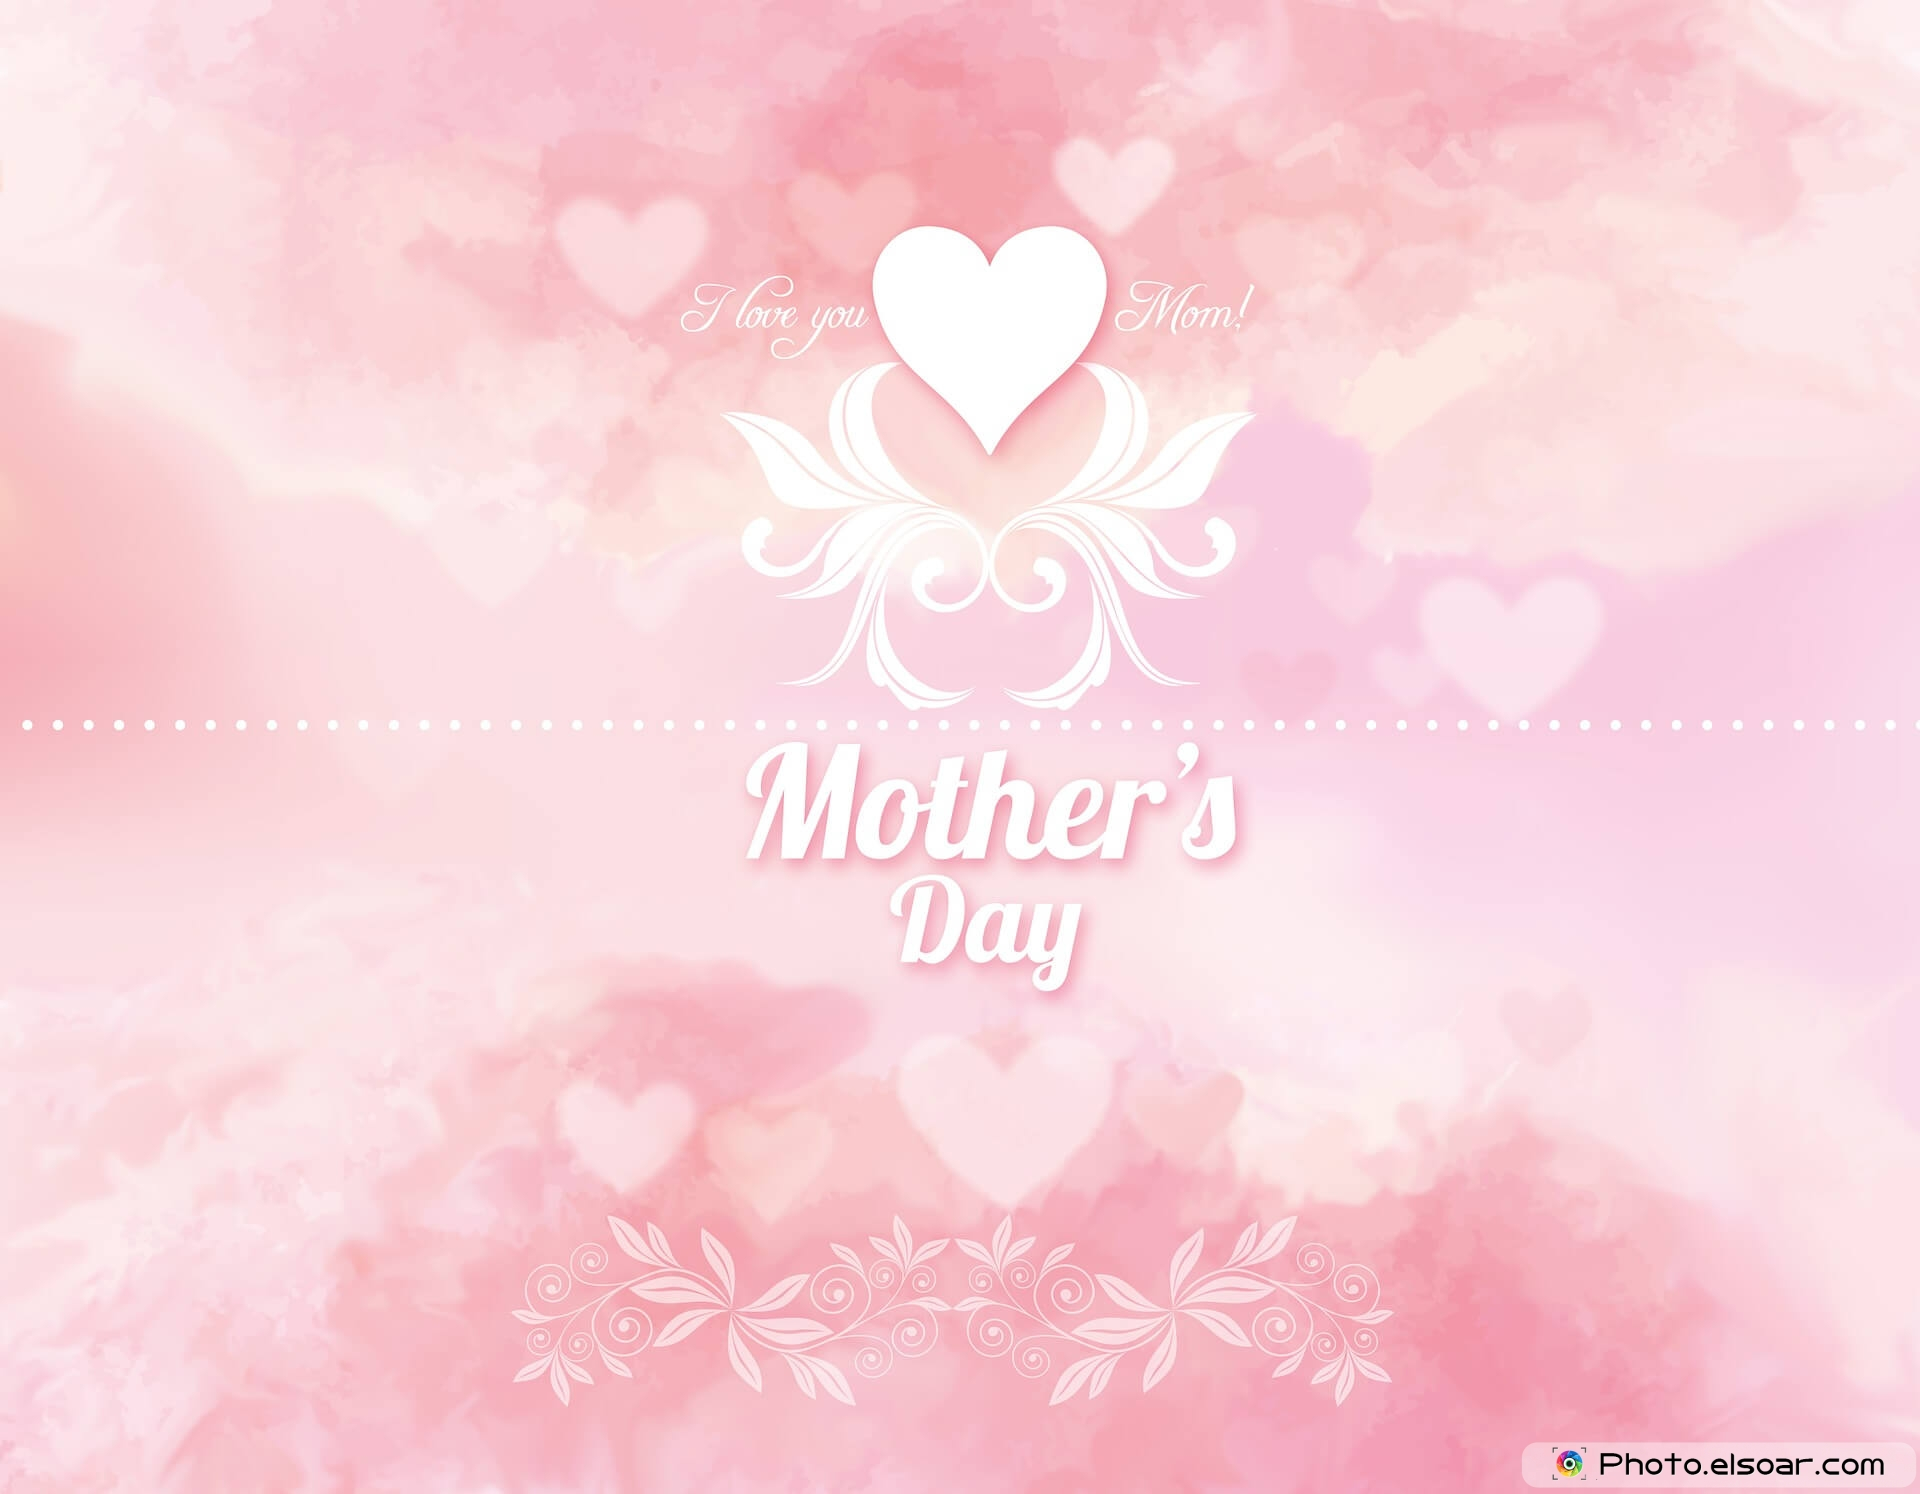 Happy Mother's Day,Mothers Day Free Greeting Card,Mothers Day 2017